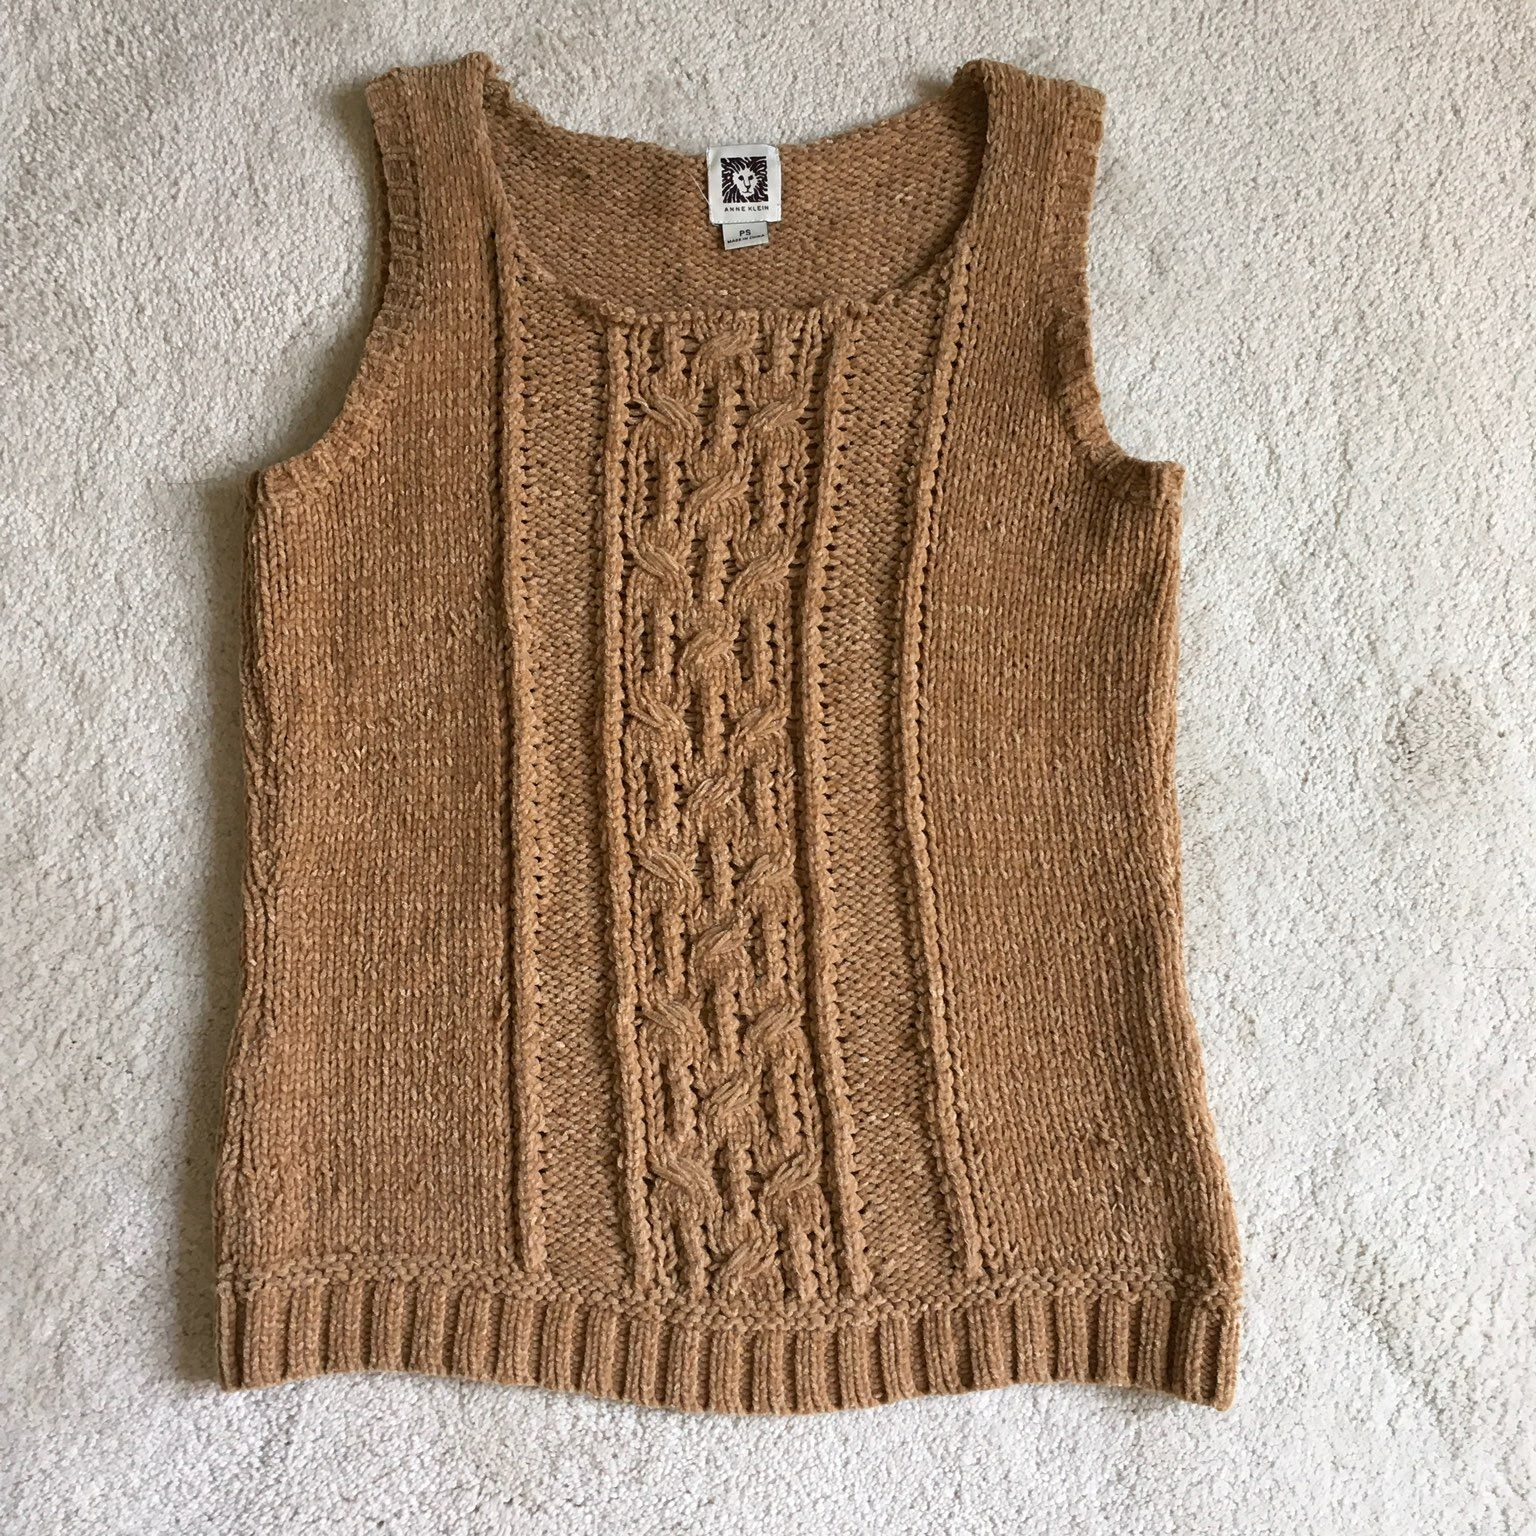 Anne Klein Crew Neck Sweater Vest - Mercari: BUY & SELL THINGS YOU ...